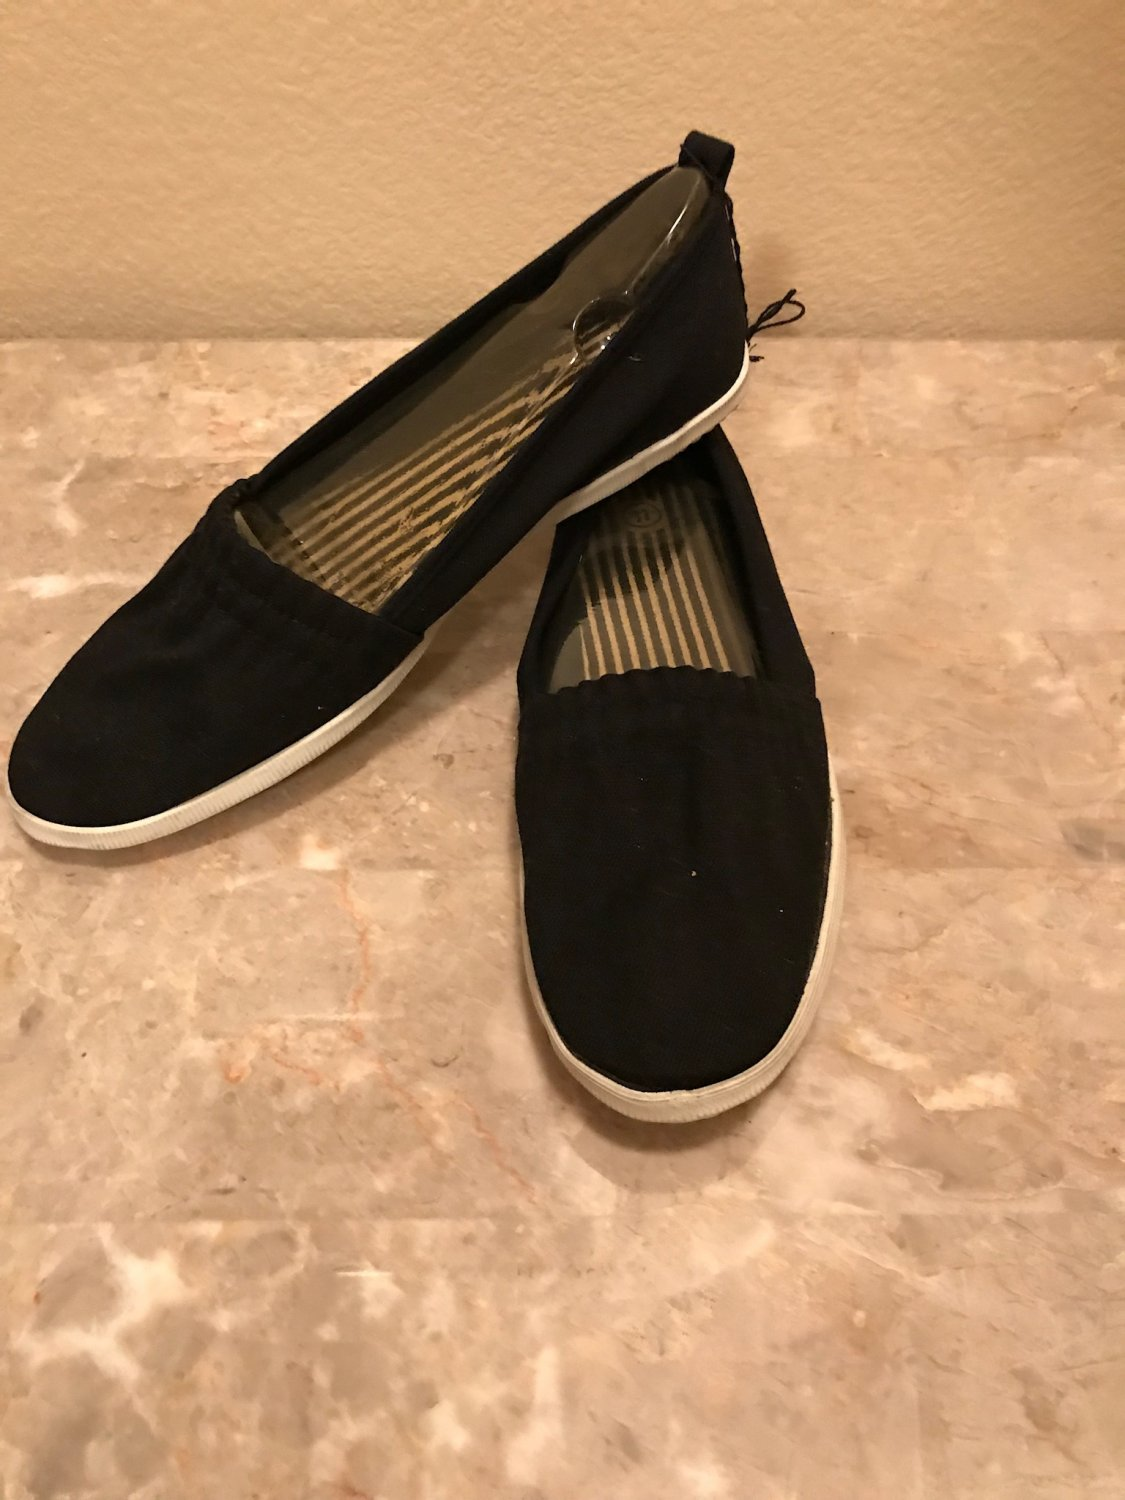 NEW Ladies SNEAKERS Slip On Flats SIZE 11 BLACK Canvas Shoes